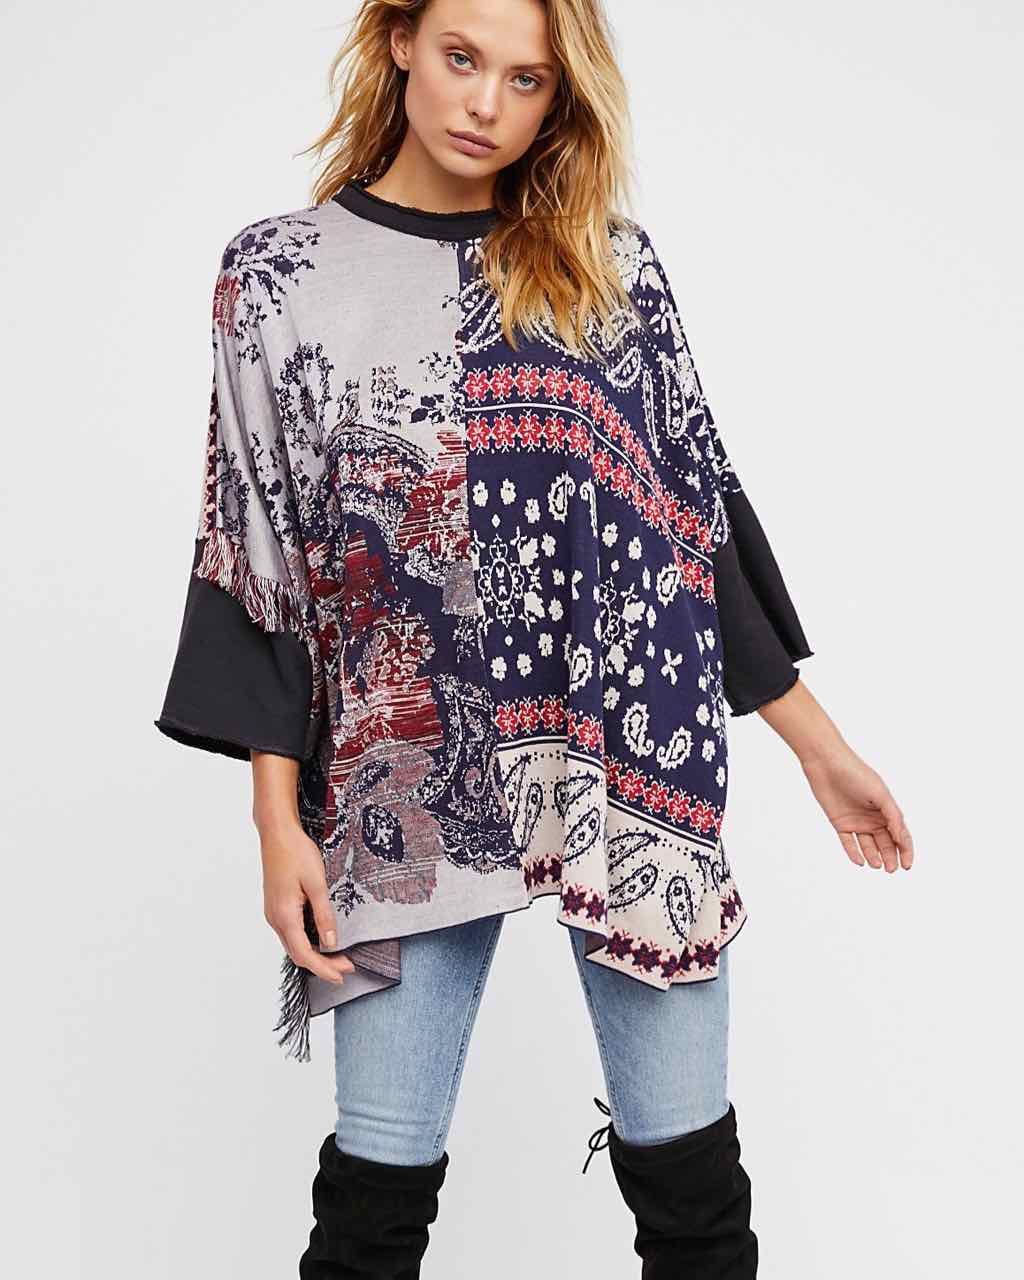 Free People Patchwork Tunic with Paisley